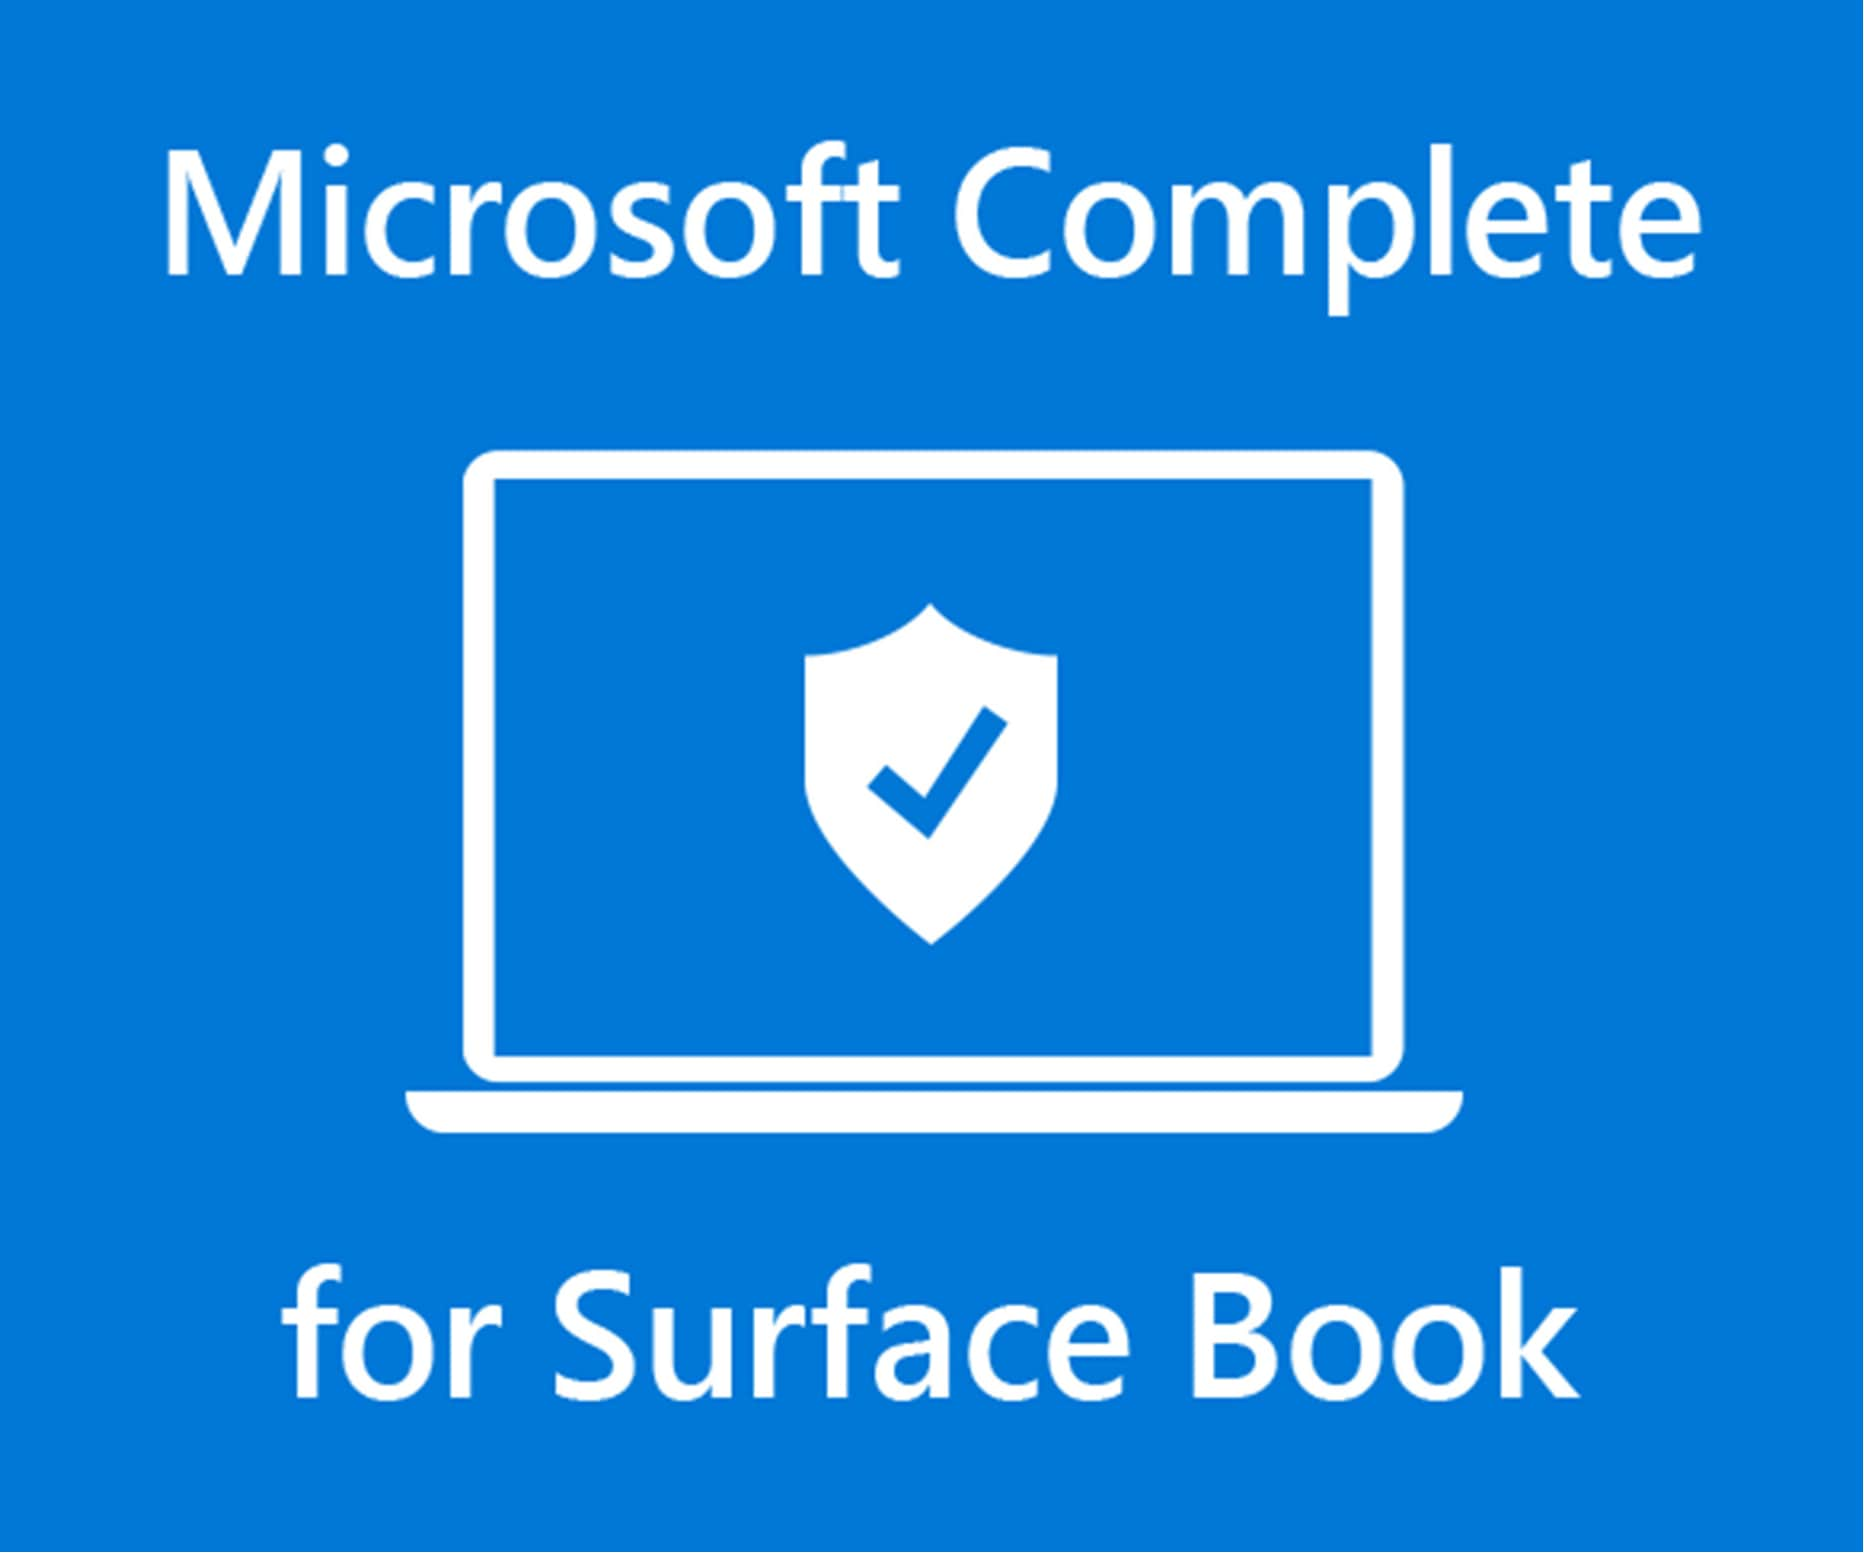 Microsoft Complete Accident Protection for Surface Book